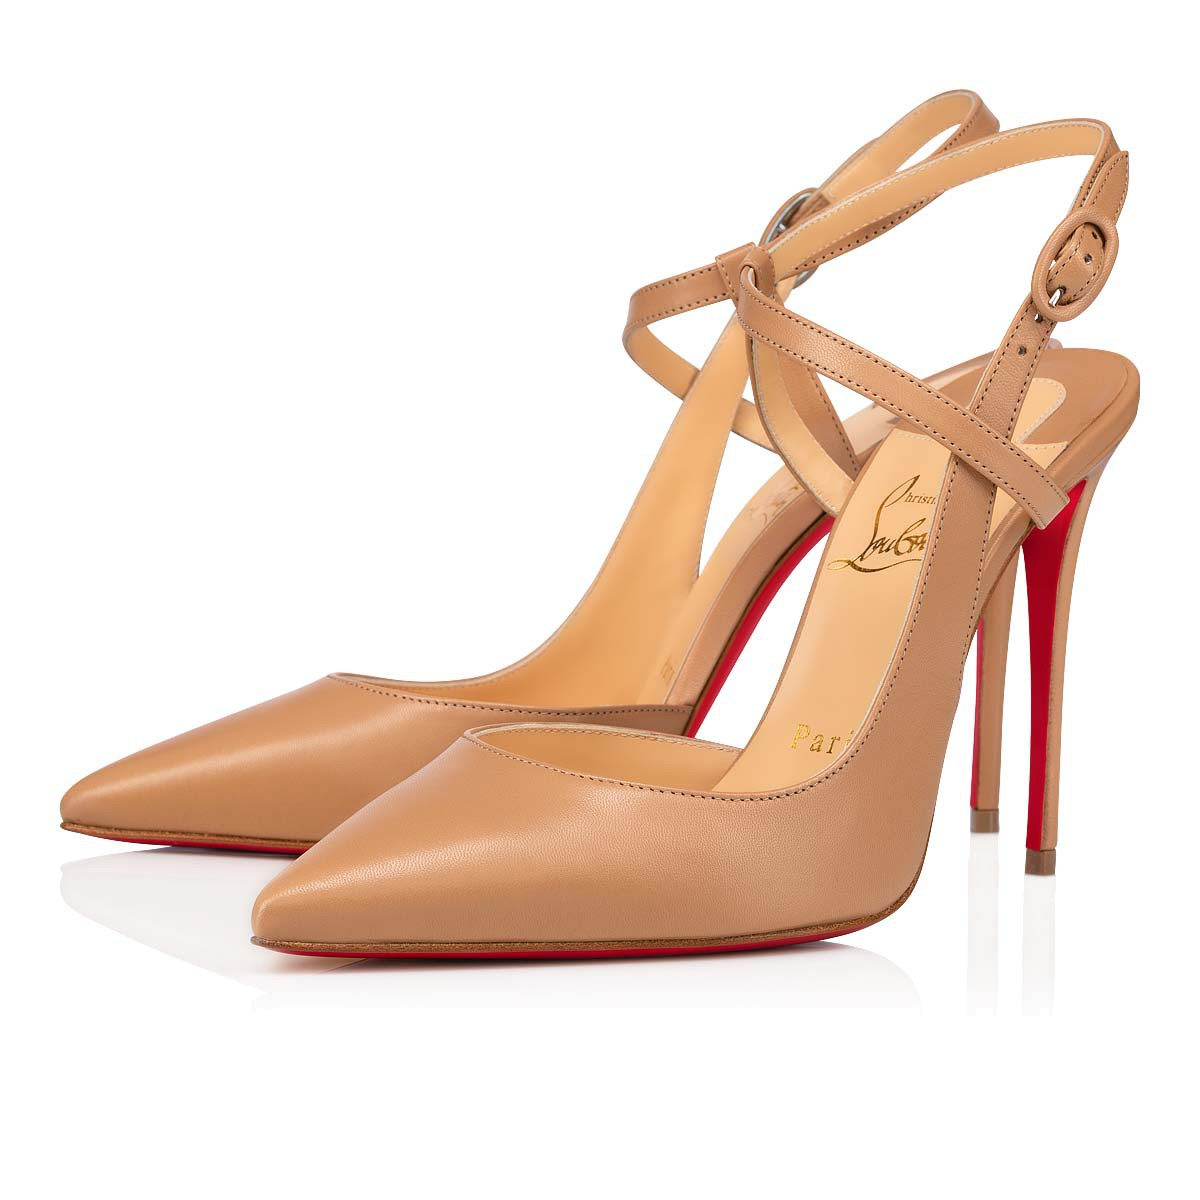 Shoes - Jenlove - Christian Louboutin